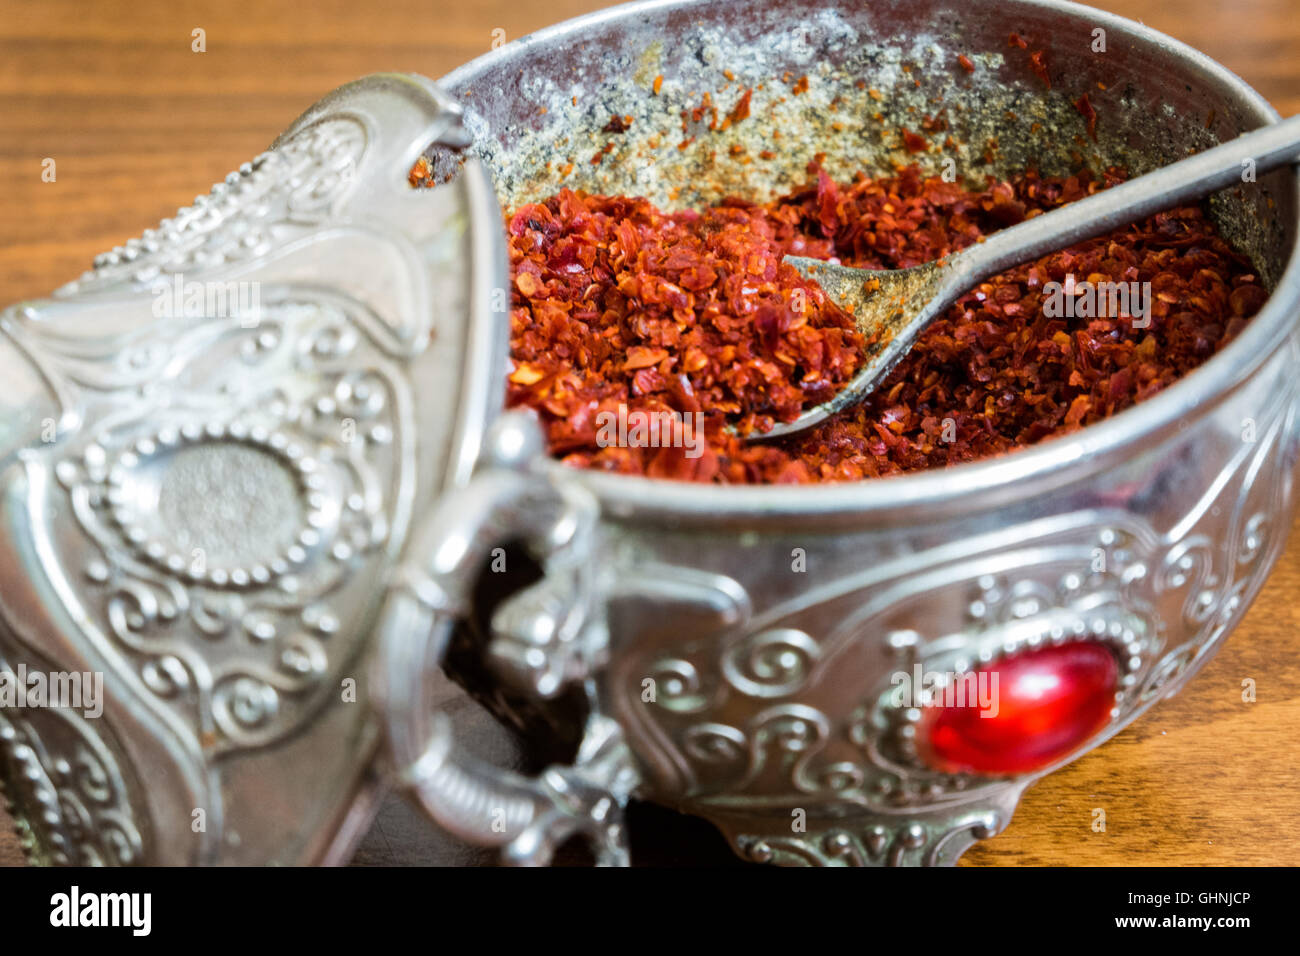 Ground red chili pepper in an ancient silver container with a spoon Stock Photo